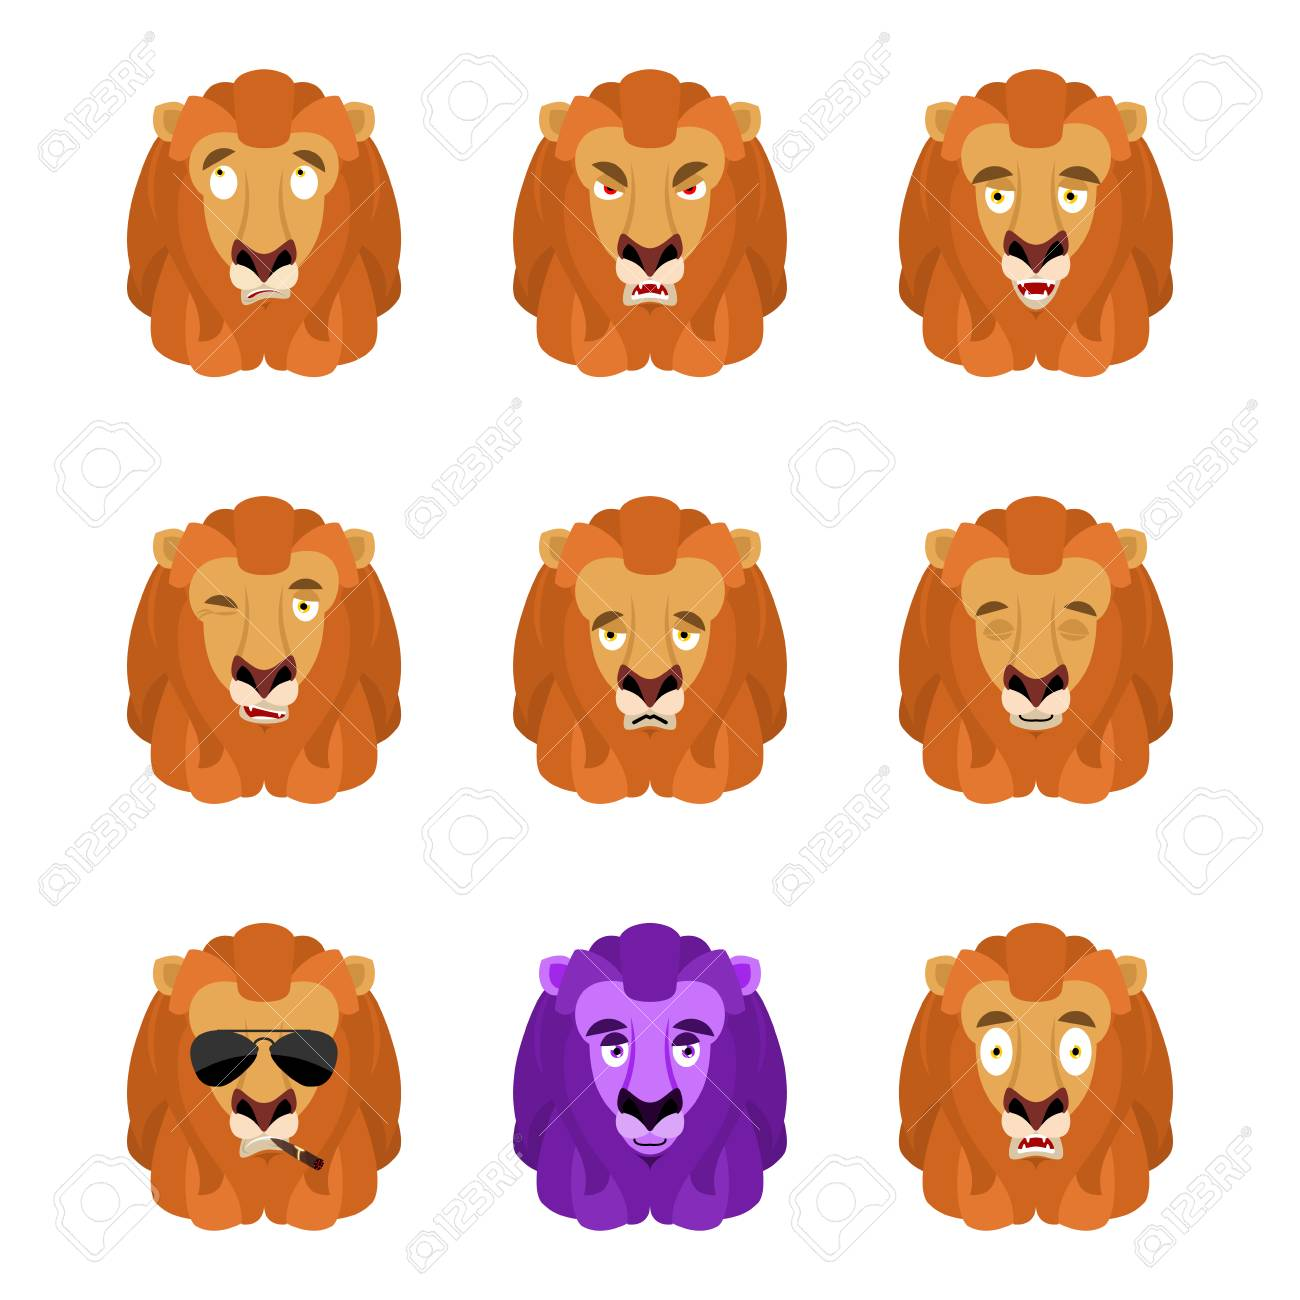 Lion Set Emoji Avatar On White Background Vector Illustration Royalty Free Cliparts Vectors And Stock Illustration Image 89907351 Download icons in all formats or edit the images for your designs. 123rf com